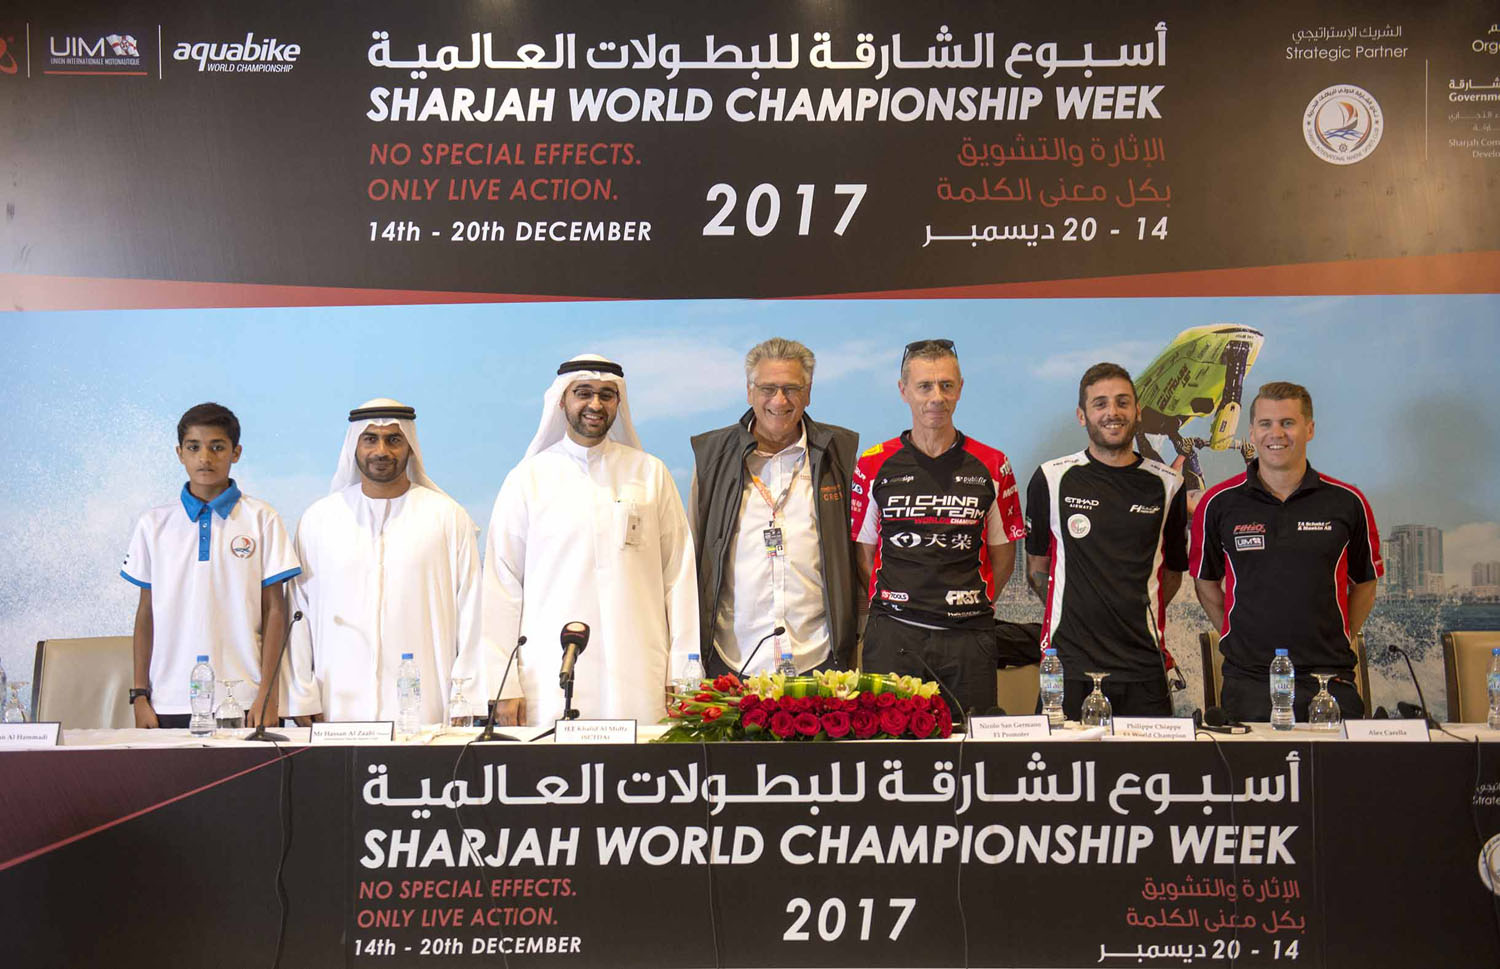 Sharjah World Championship Week 2017 – Sports Events in Sharja, UAE